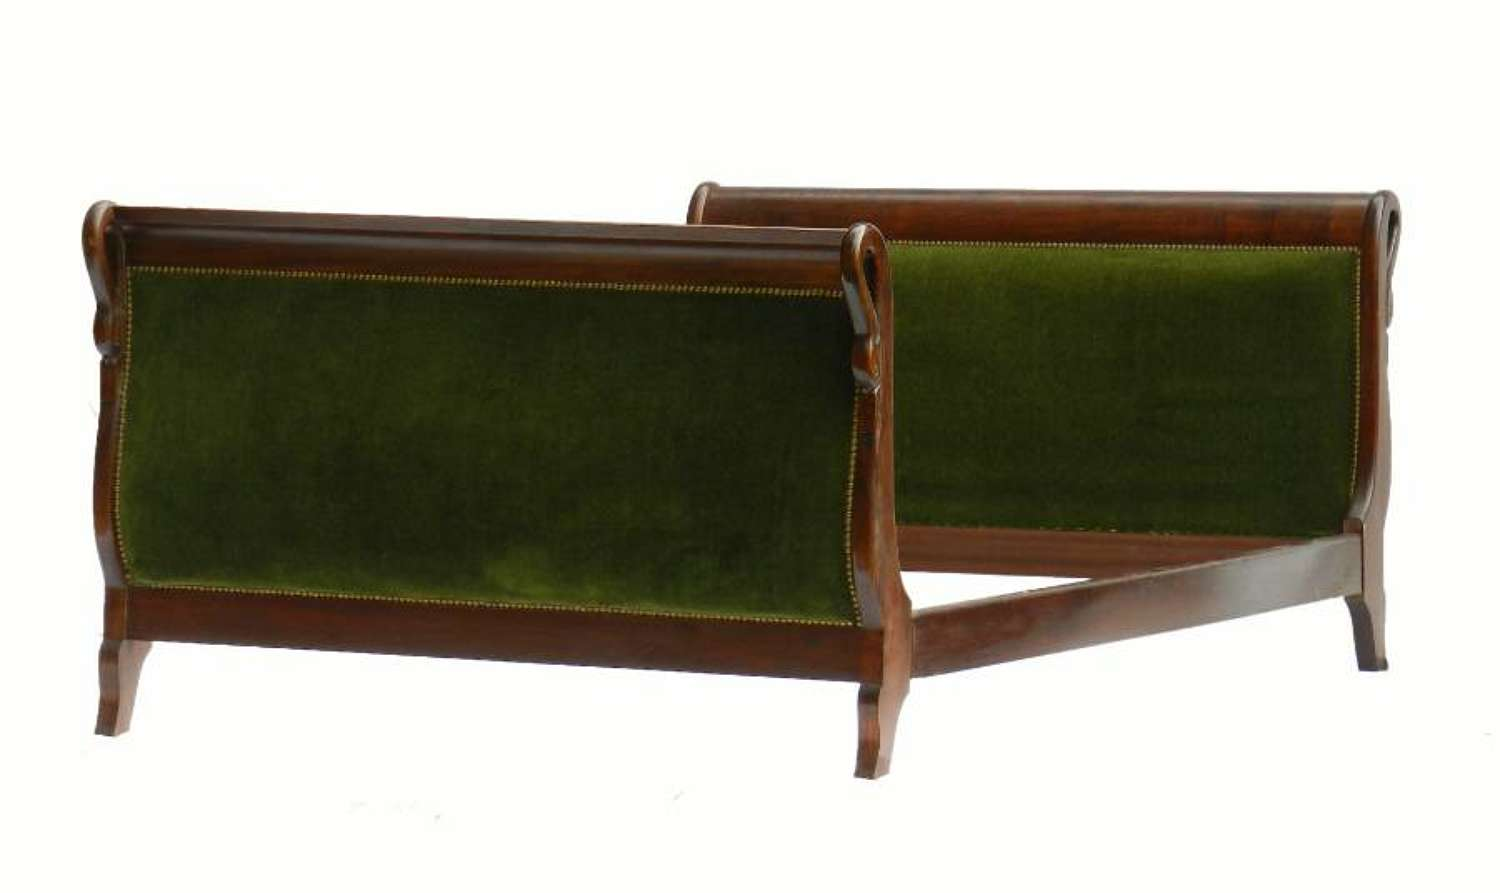 French Bed or Daybed + Base Empire rev Upholstered Swans Neck Mahogany